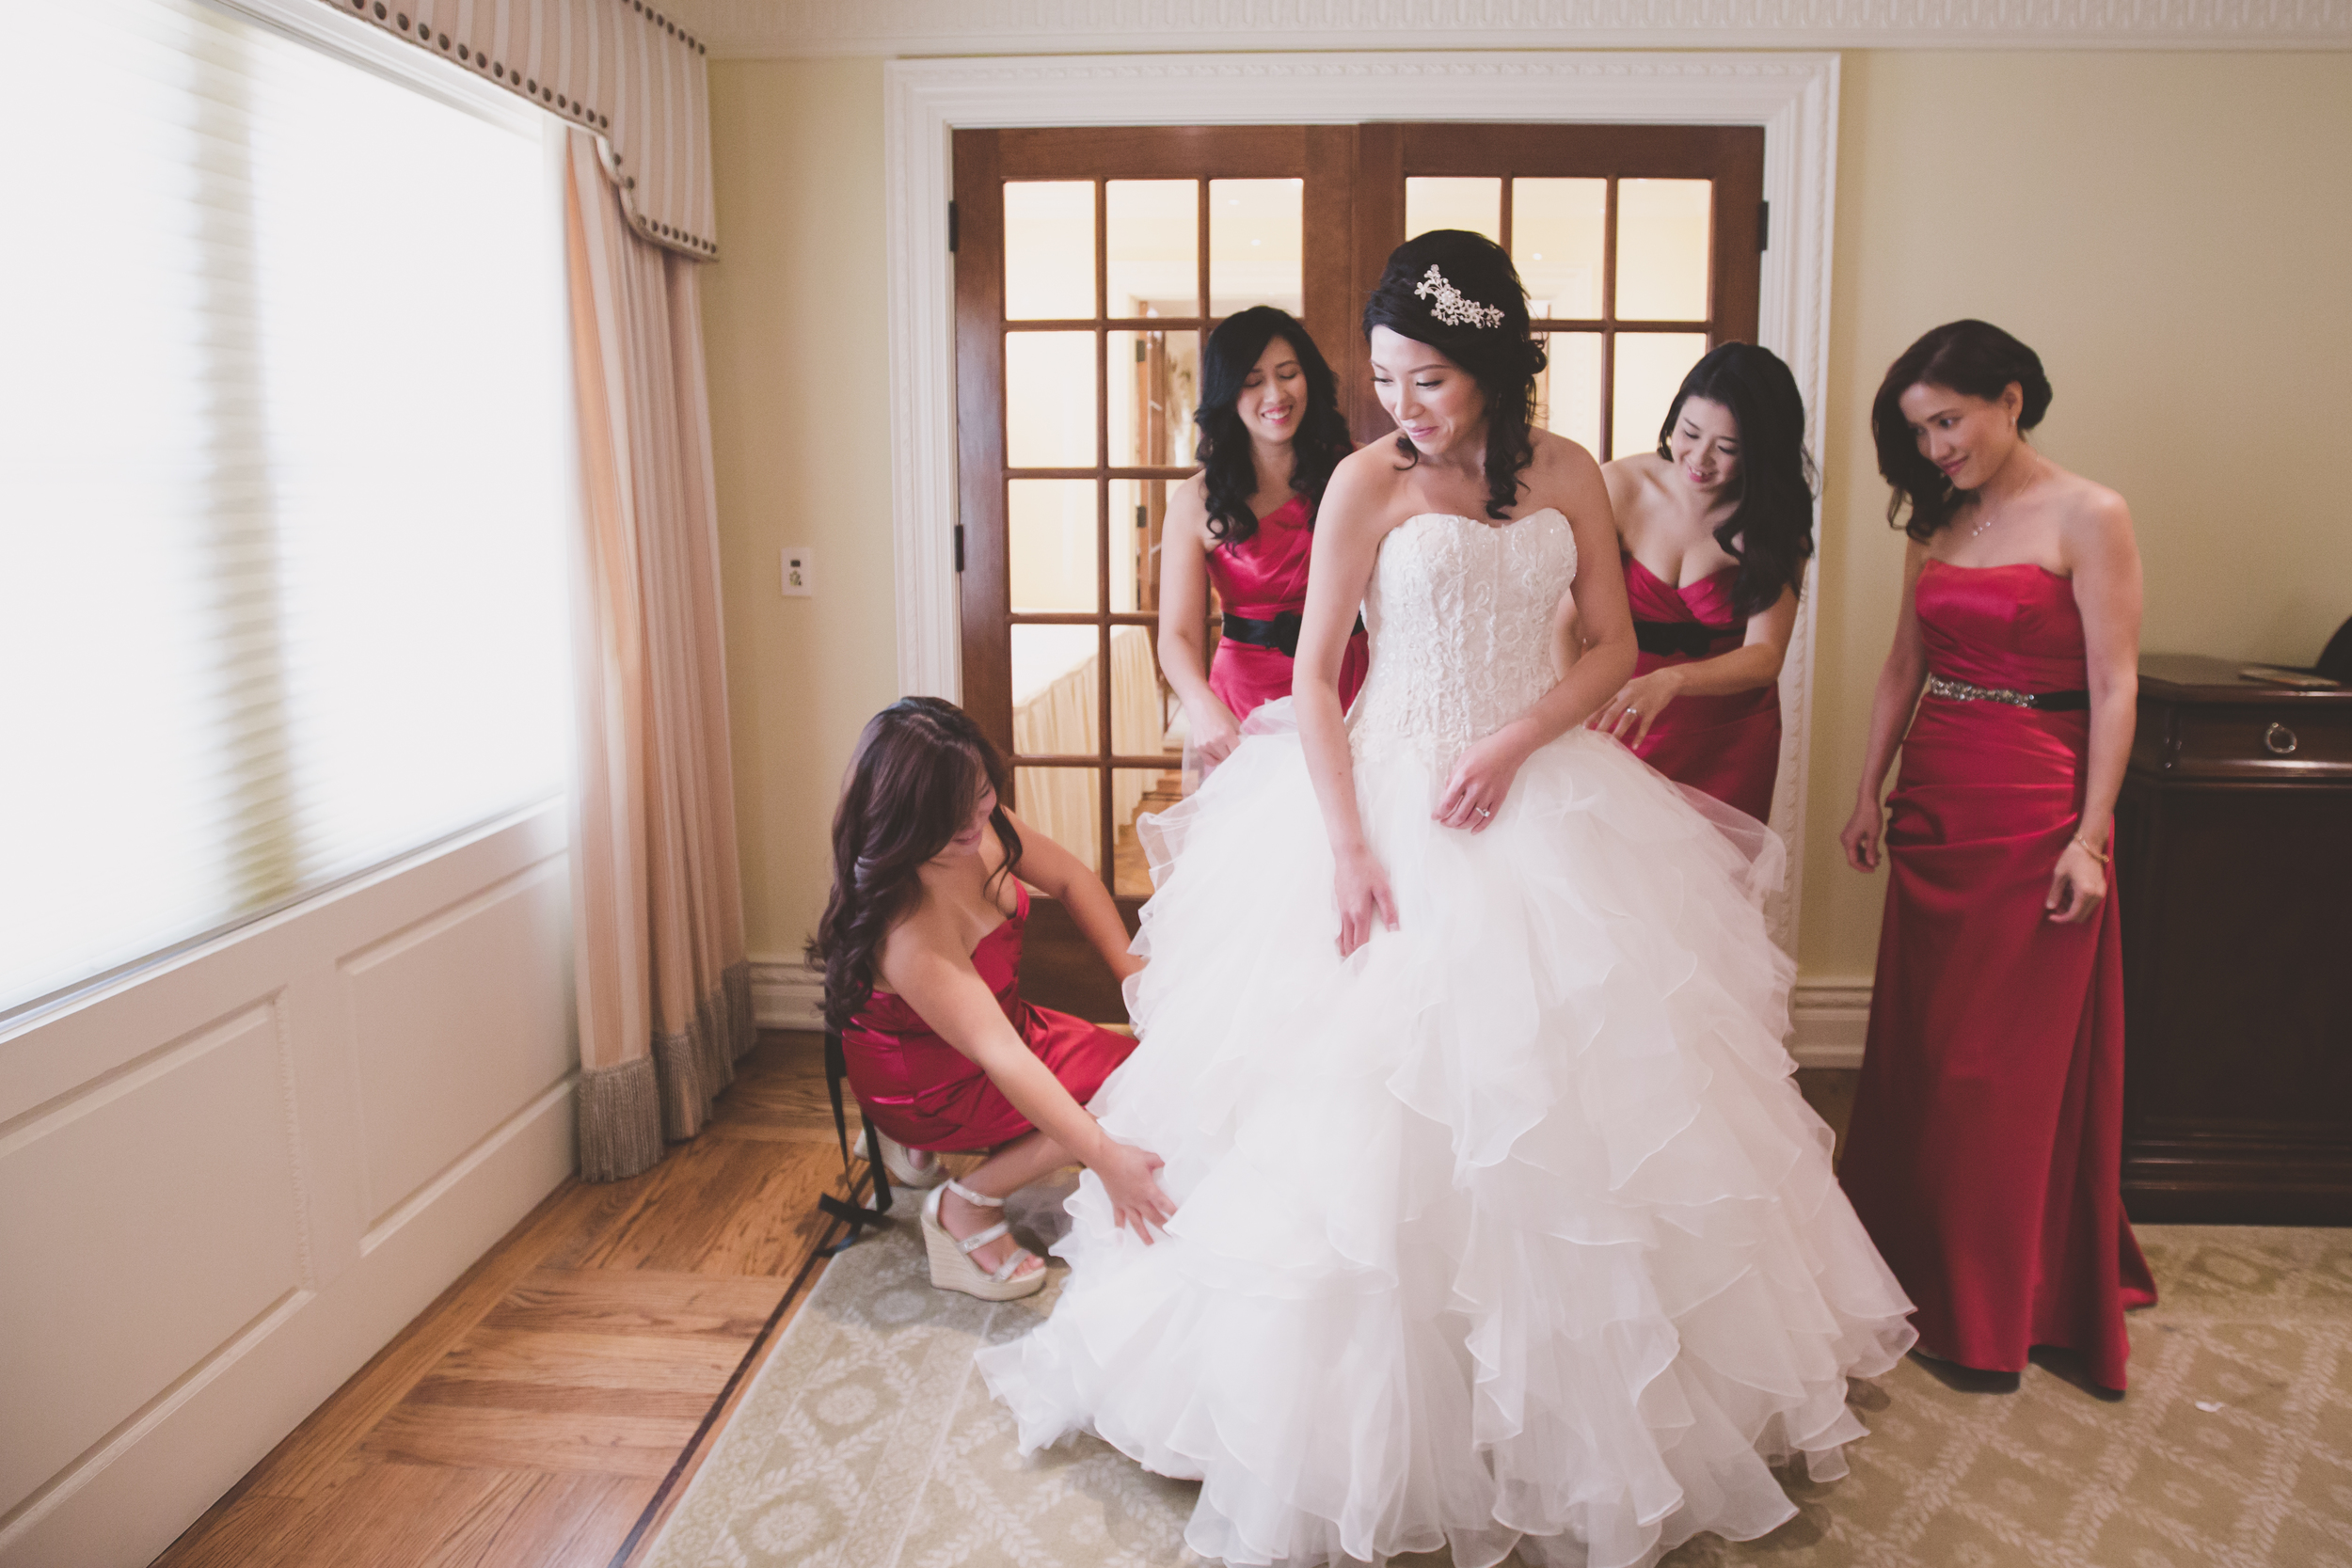 bride and bridesmaids getting ready photography